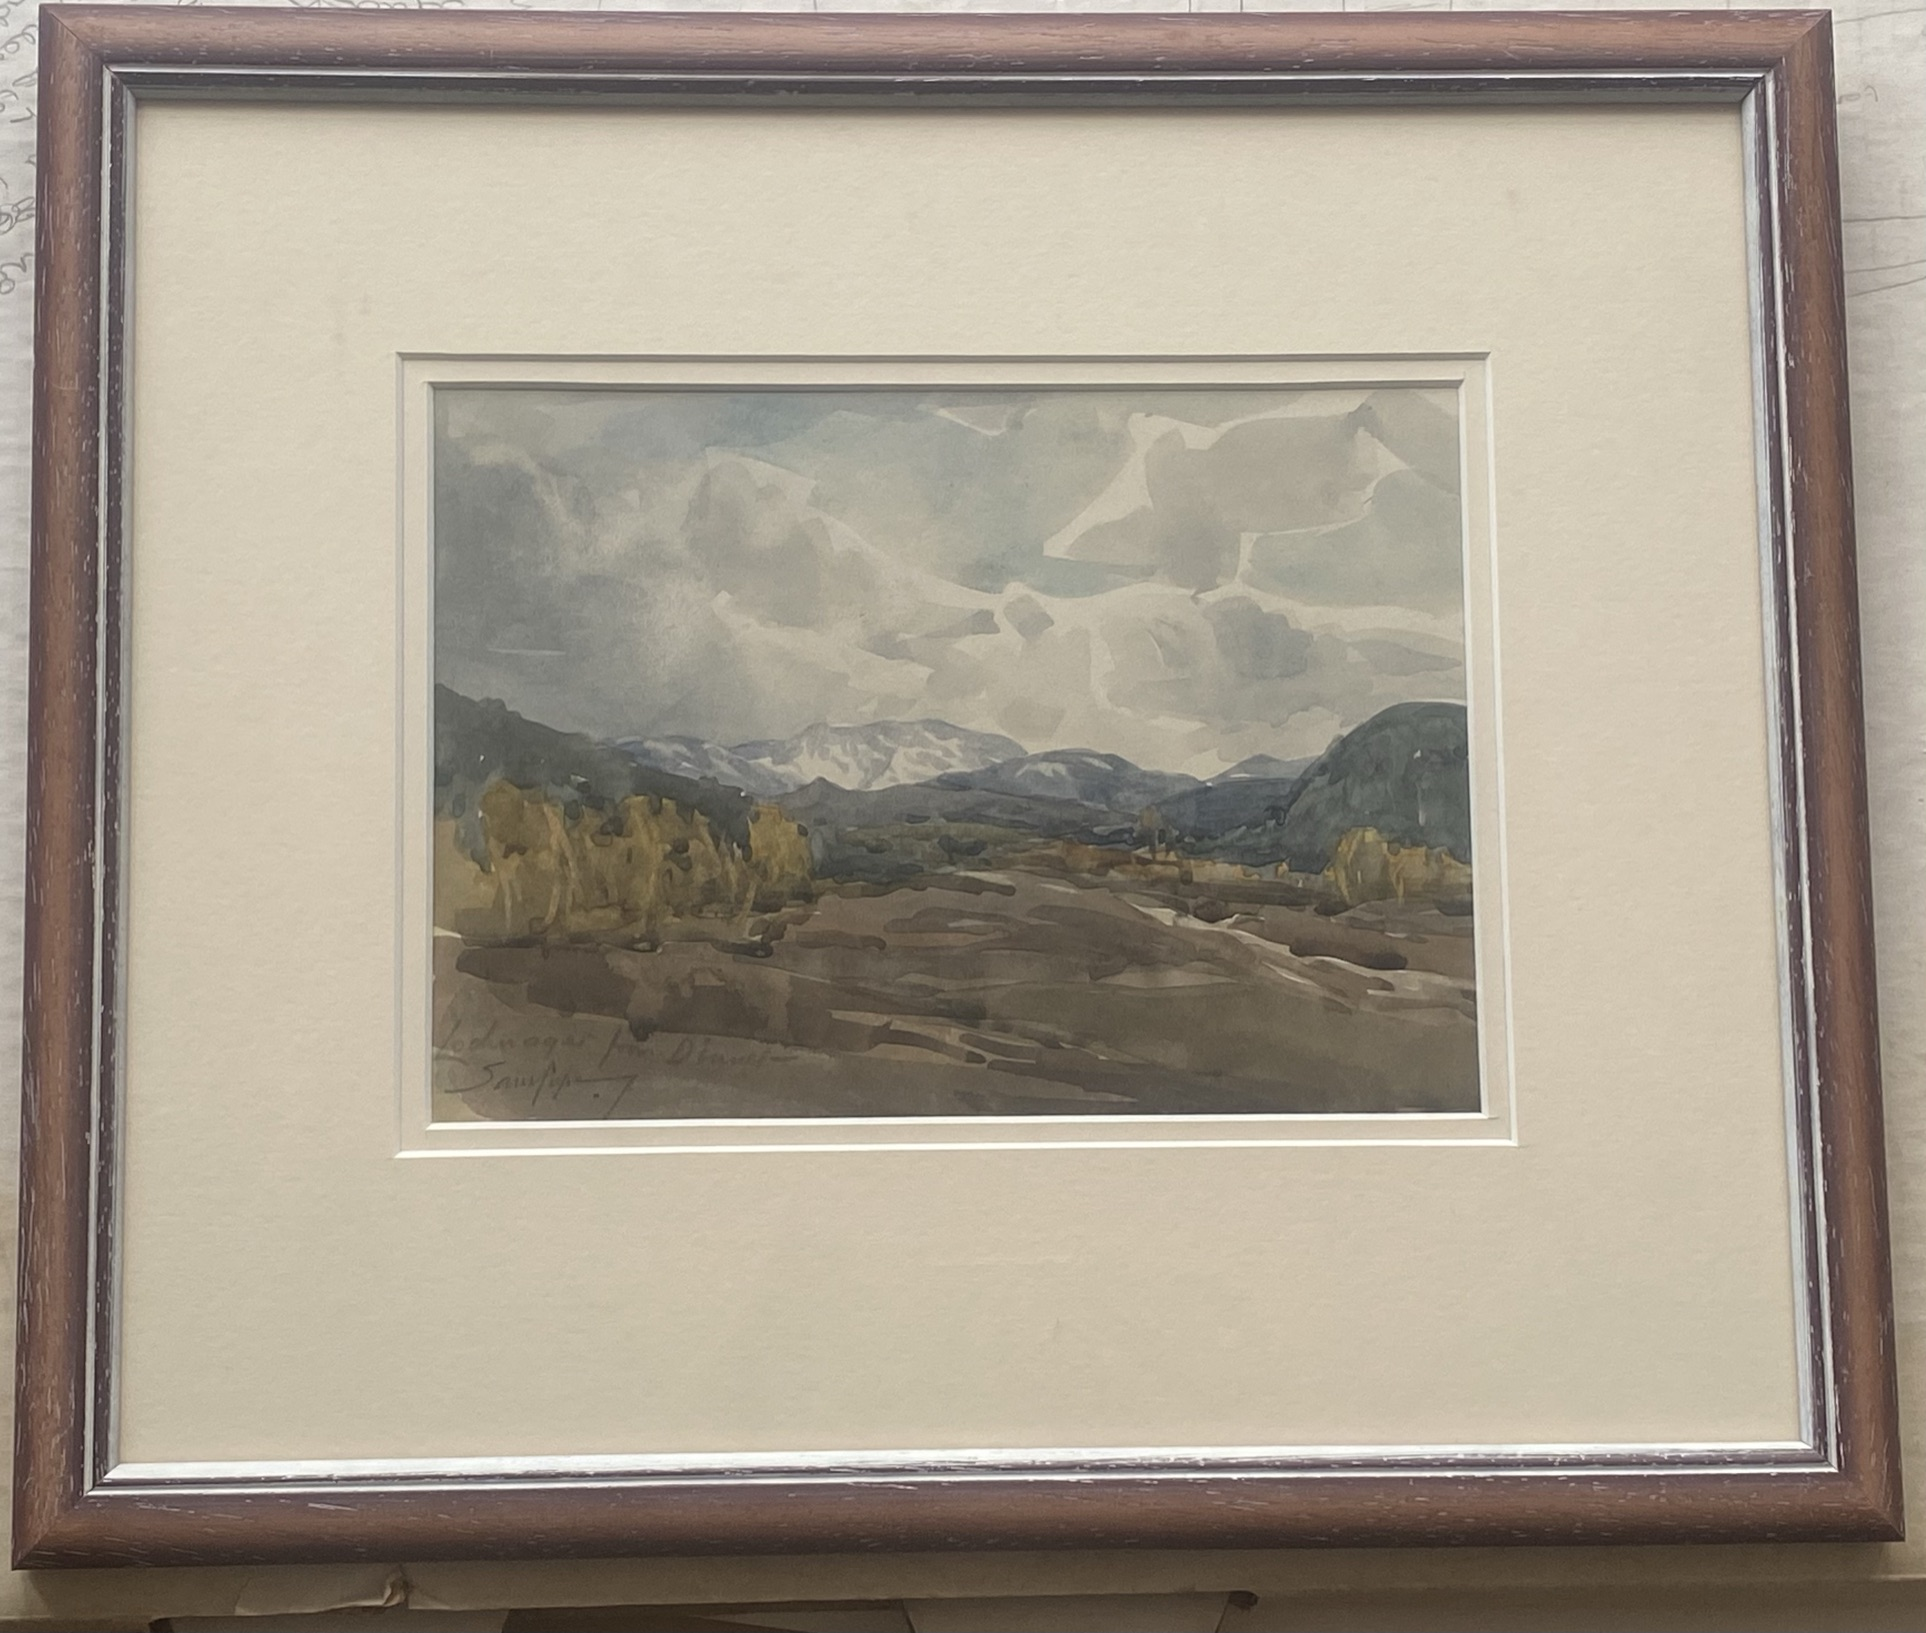 """Samuel Pope (British, active 1896-1940) signed watercolour """"Loch Na'Gar"""" - Image 2 of 3"""